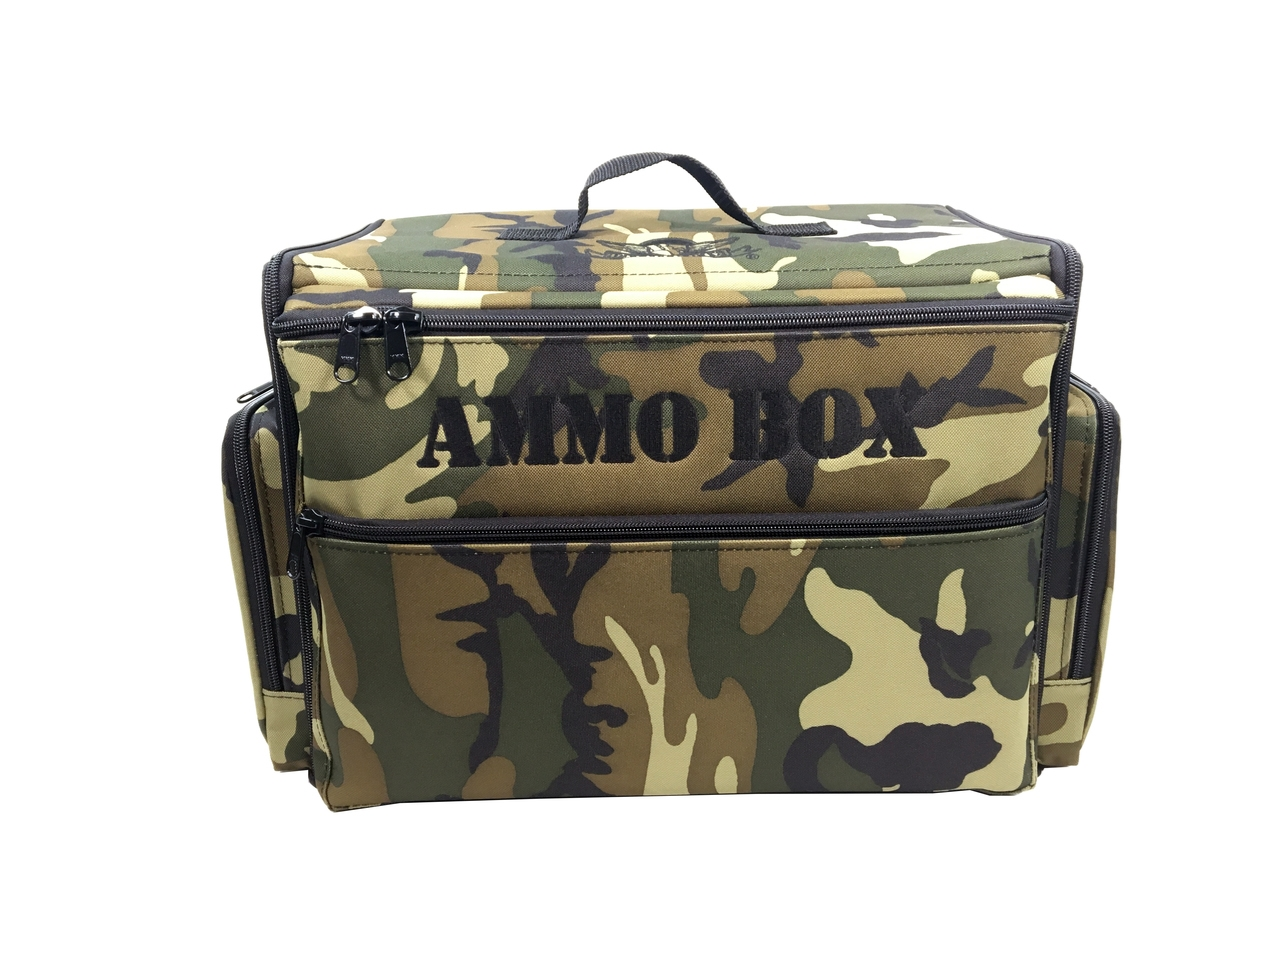 Battlefoam: Ammo Box Bag: Empty (Camo)